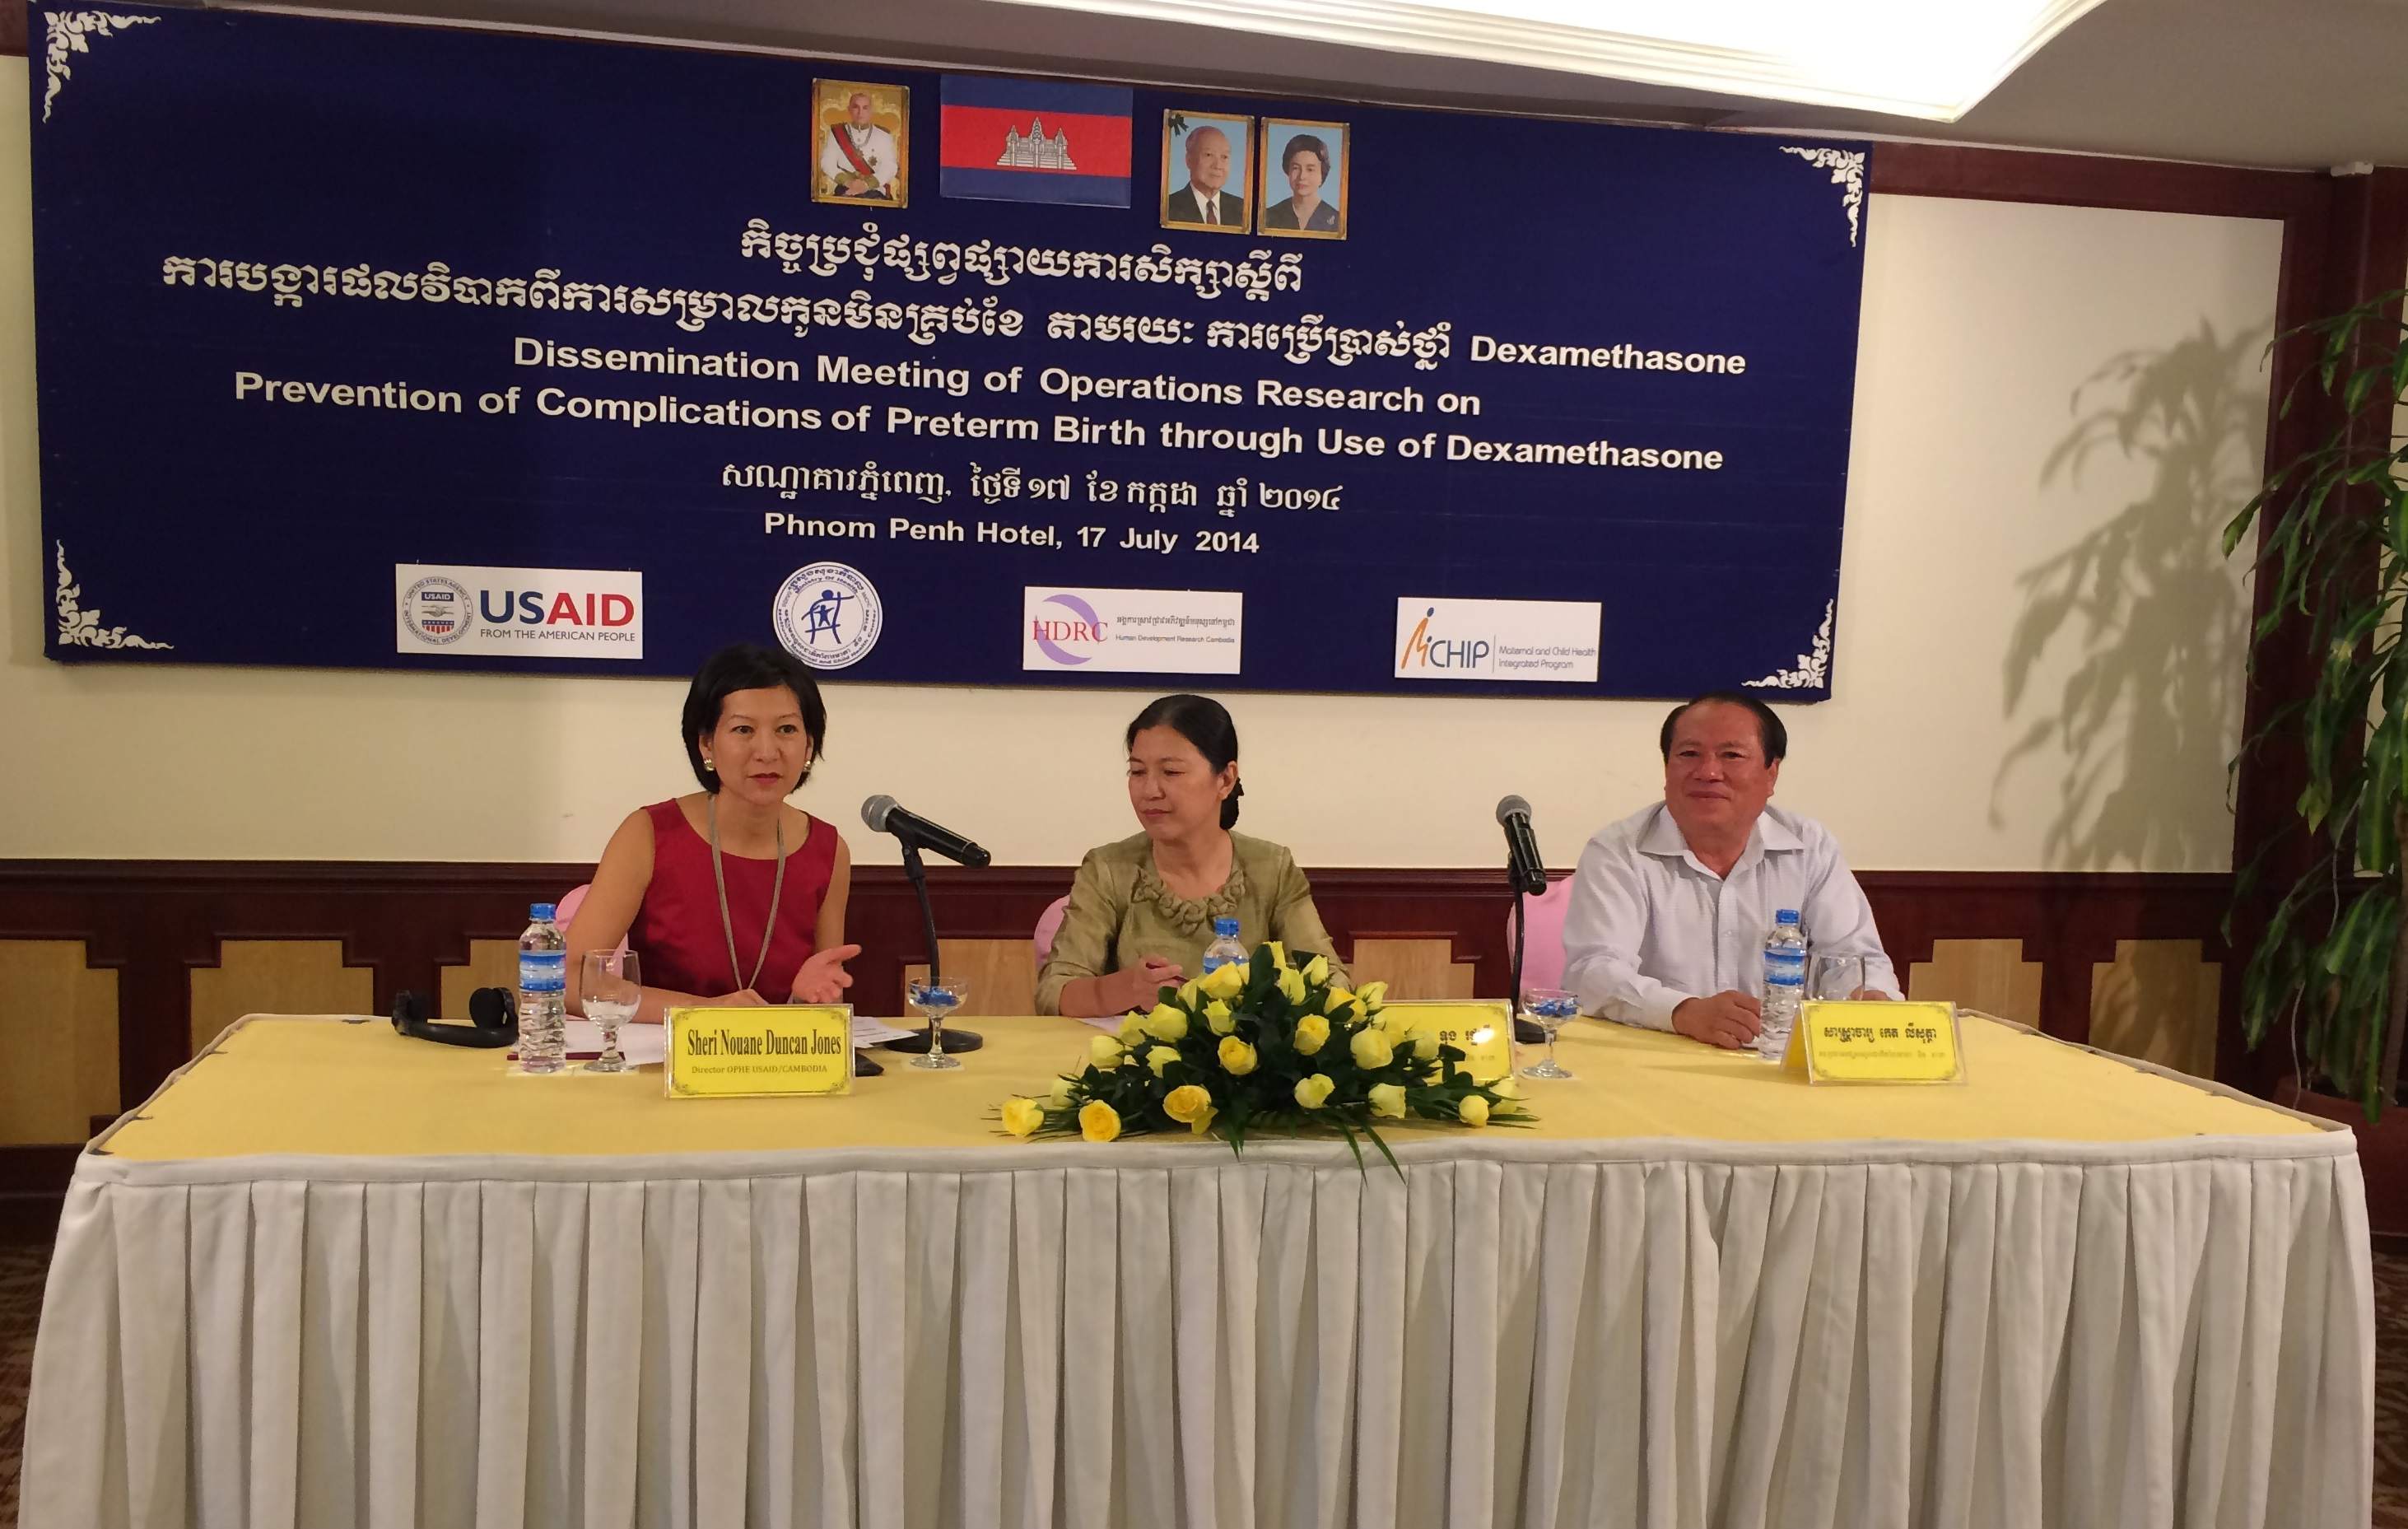 Remarks by Sheri-Nouane Duncan-Jones, Director, Office of Public Health and Education, USAID Cambodia